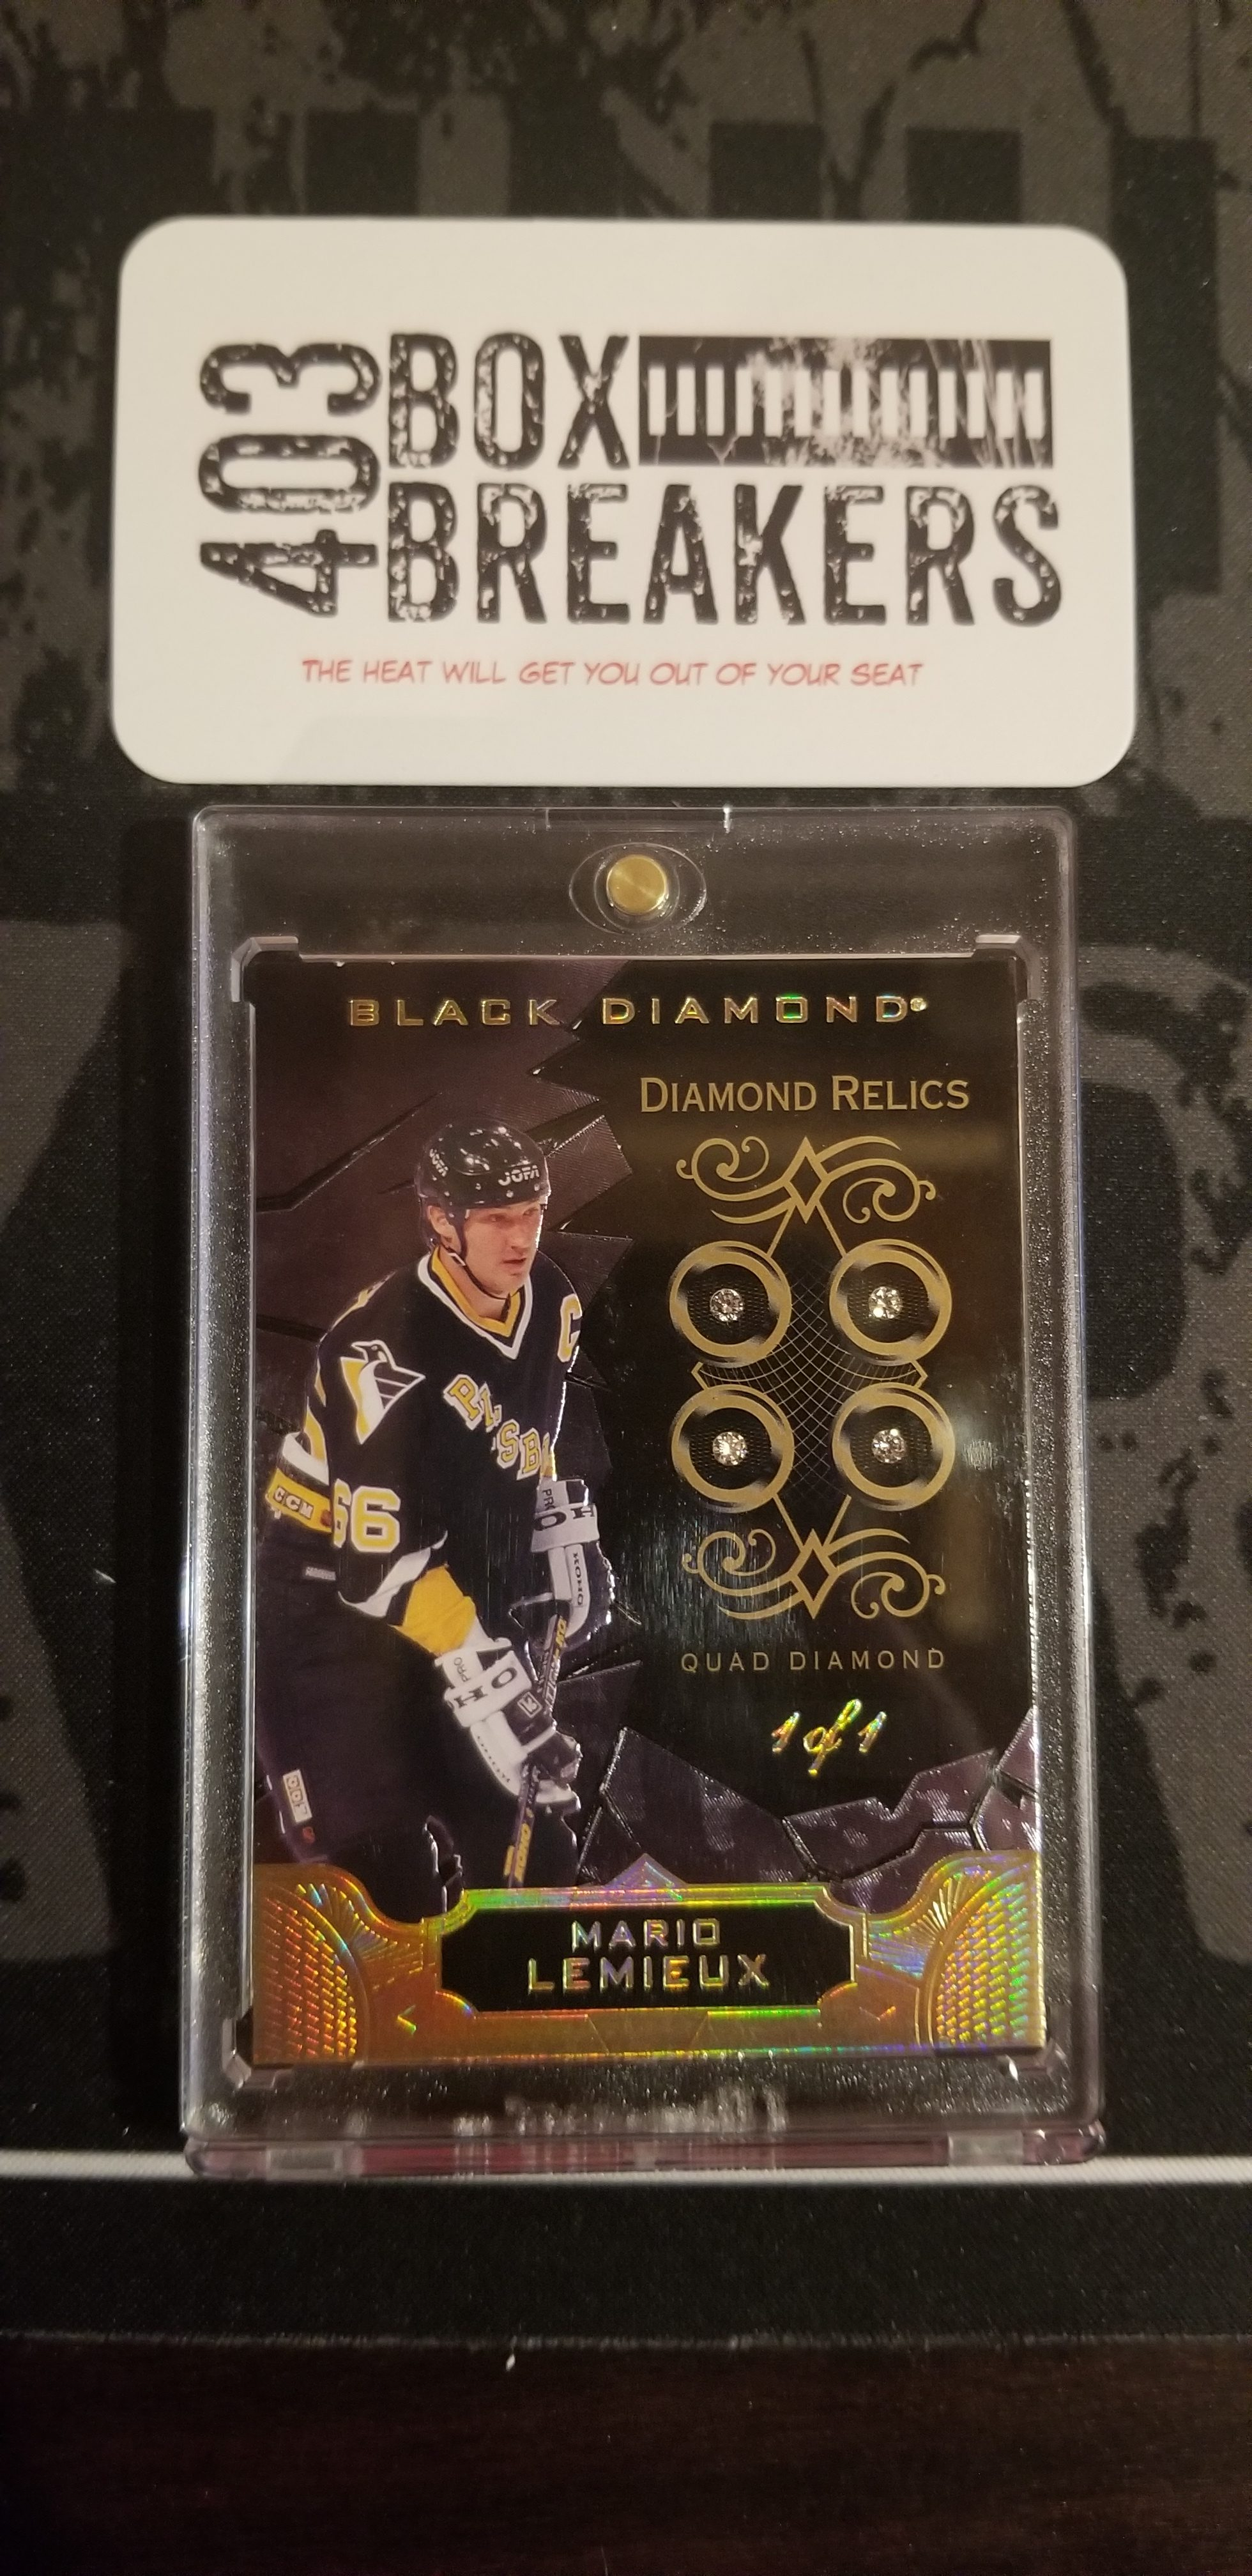 18/19 Upper Deck Black Diamond – August 8, 2019